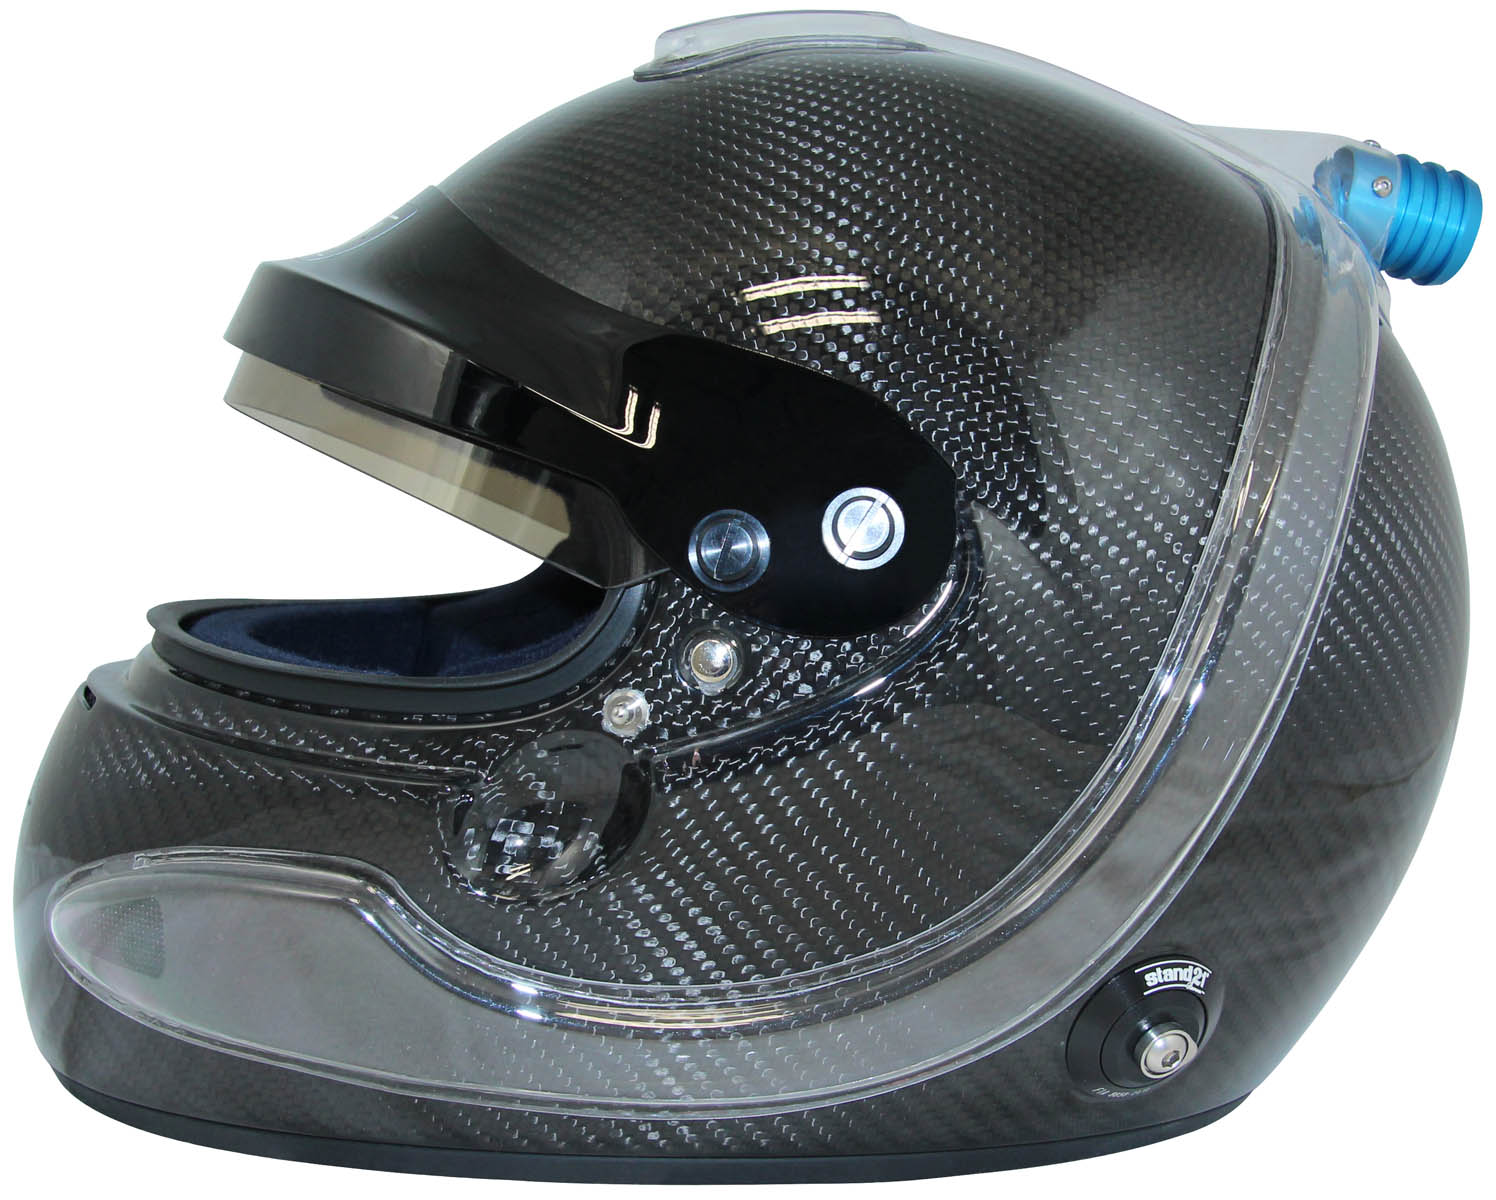 Casque IVOS-Air Force avec prise Global Air Force